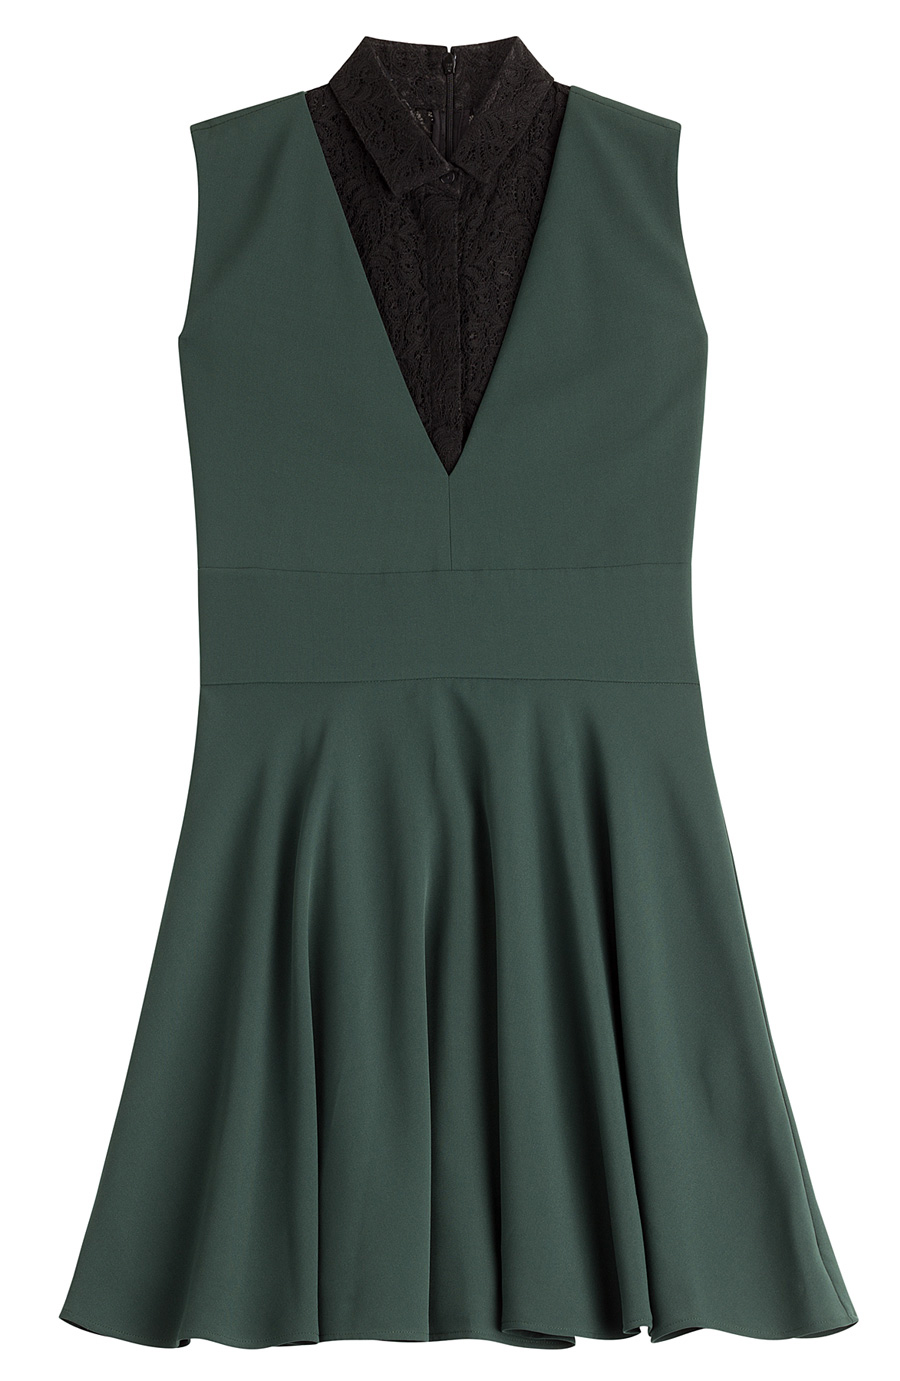 The Kooples Dress With Lace In Green